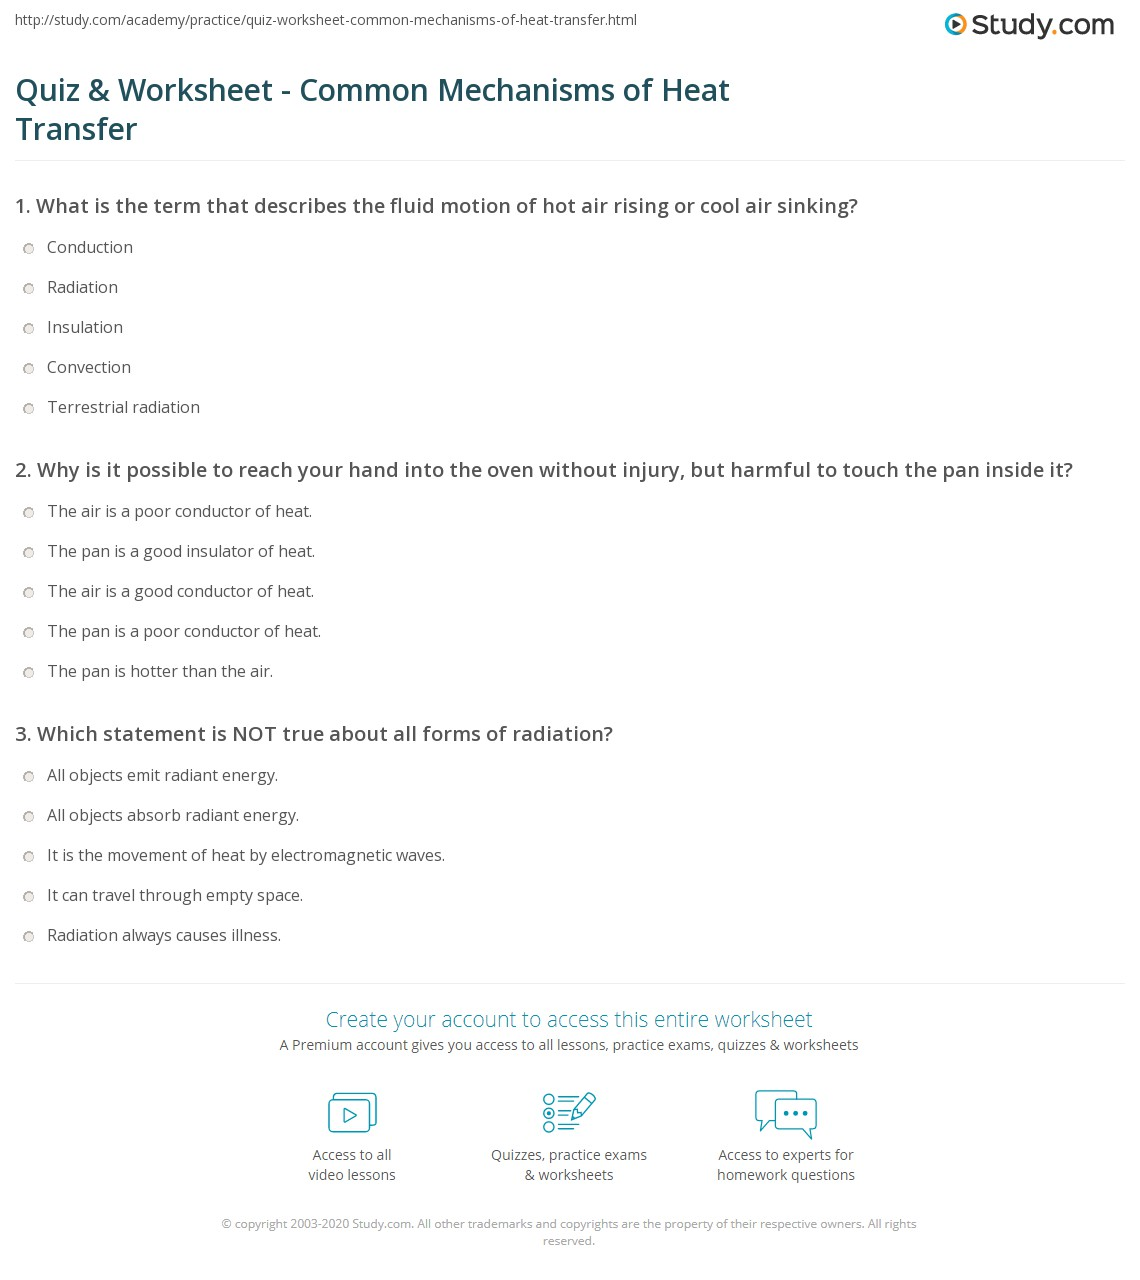 Quiz & Worksheet mon Mechanisms of Heat Transfer